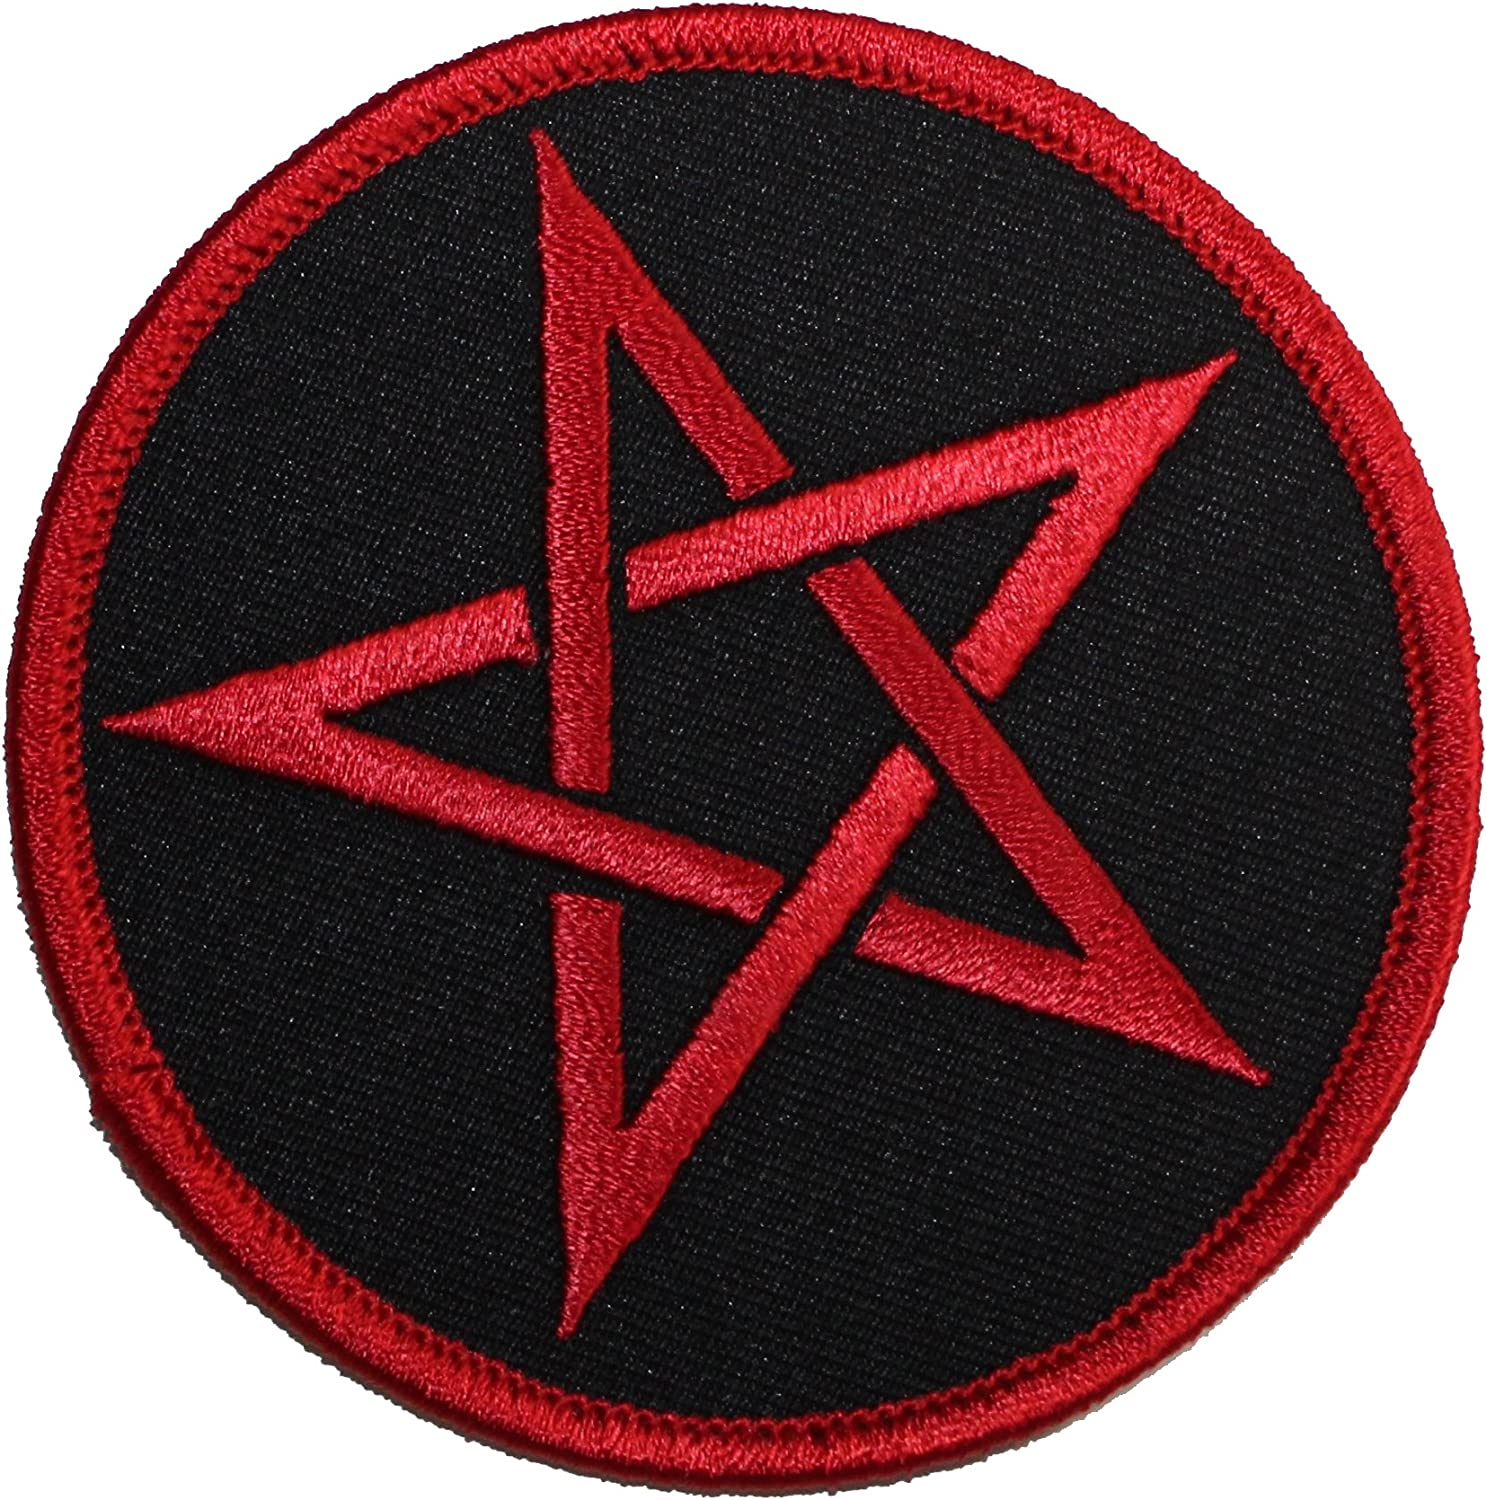 Red Pentagram Iron On Patch Devil Wicca Demon Witchcraft Badge Applique Sew